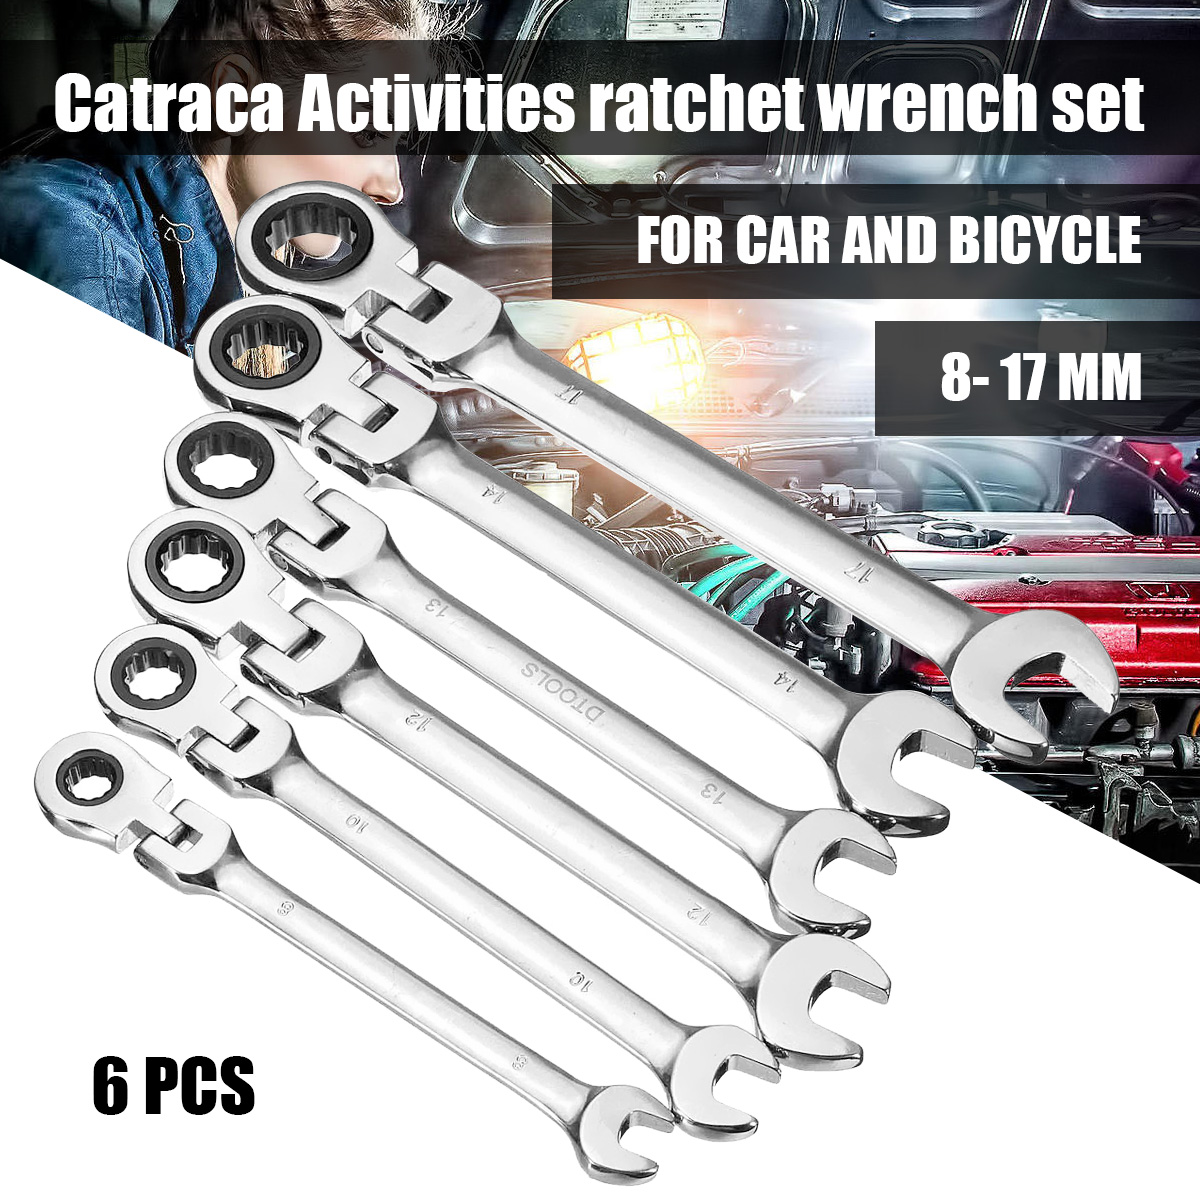 Newest 6pcs Gears Wrench Set Open End Wrenches Activities Ratchet Repair Tools To Bike Torque Combination Spanner Allen Keys berrylion 7pcs ratchet wrench spanner combination set 8 19mm open end torque spanner repair tools